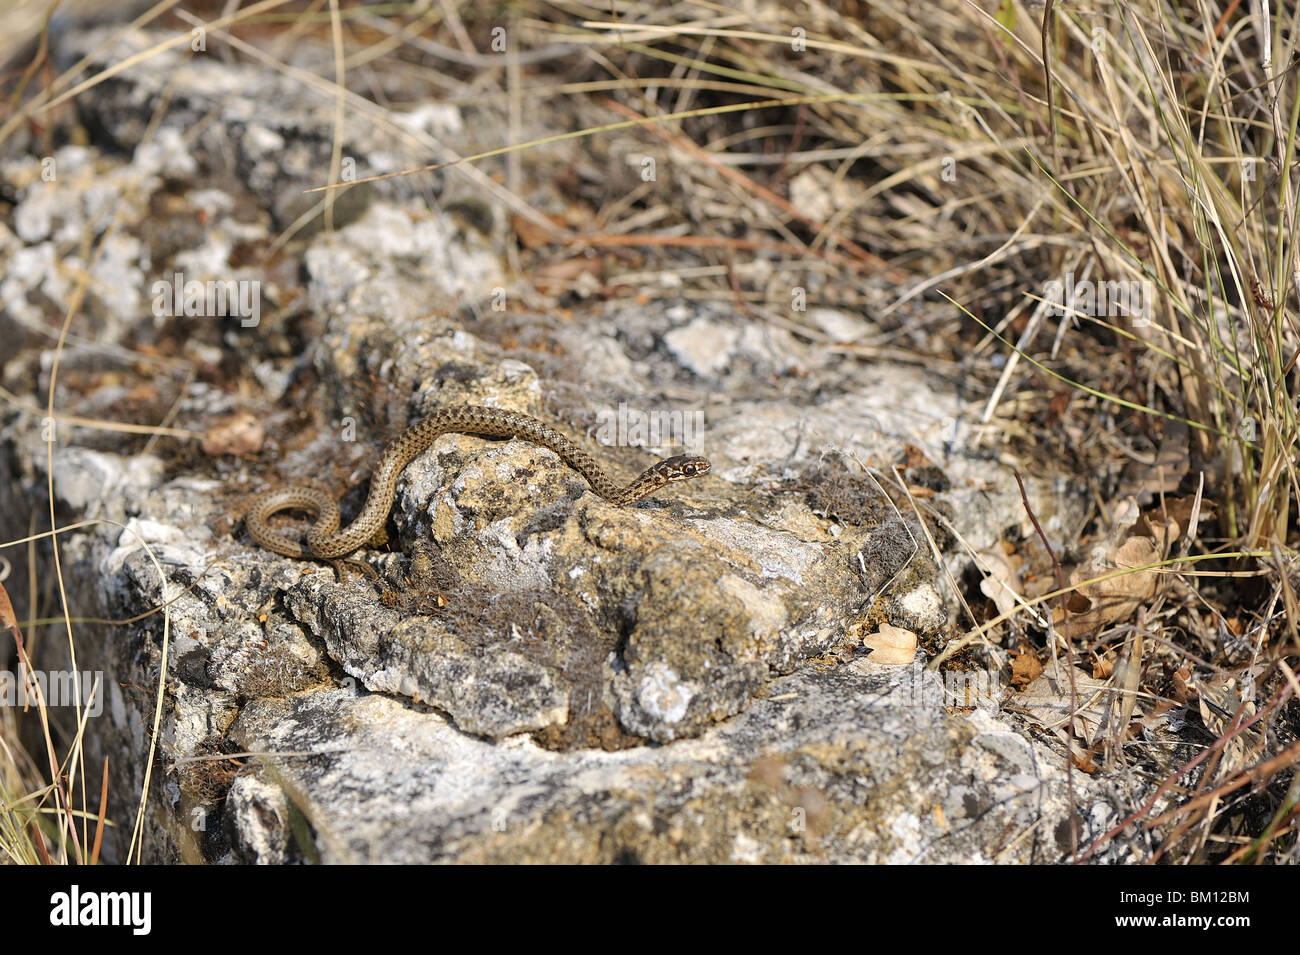 Rock Shop Montpellier Newborn Montpellier Snake Crawling On A Rock Stock Photo 29527336